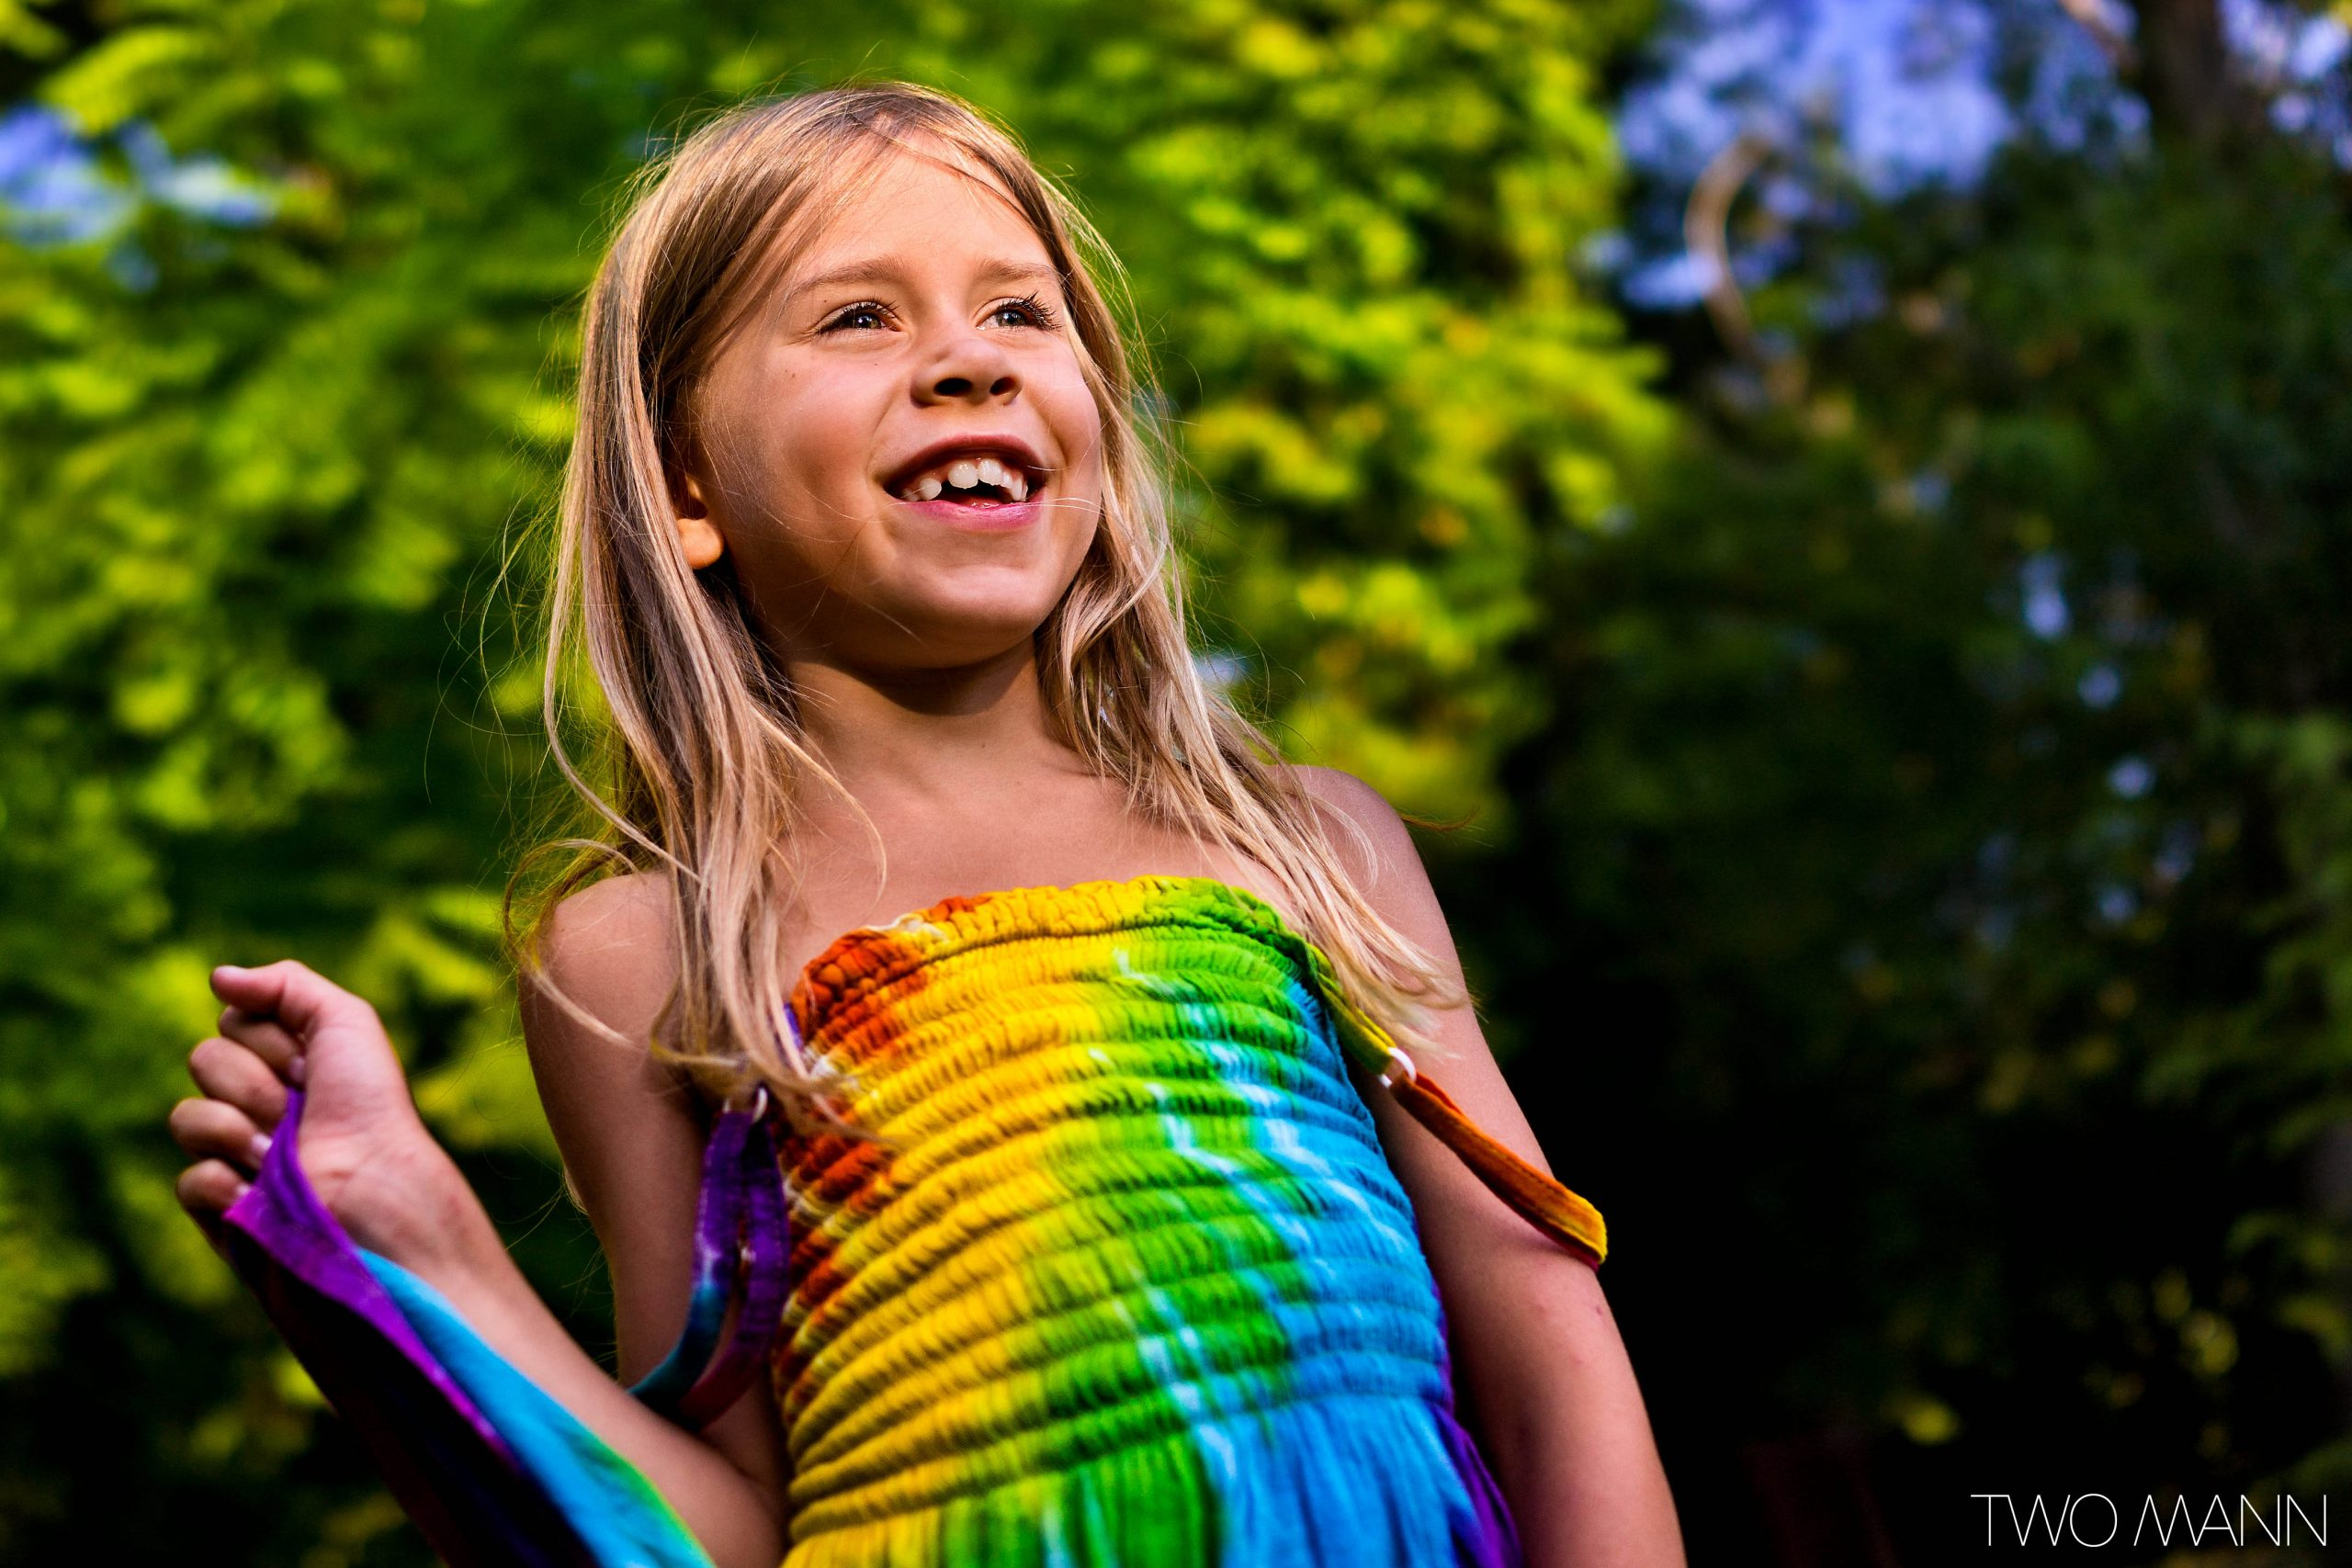 Young girl in tie dye dress smiling